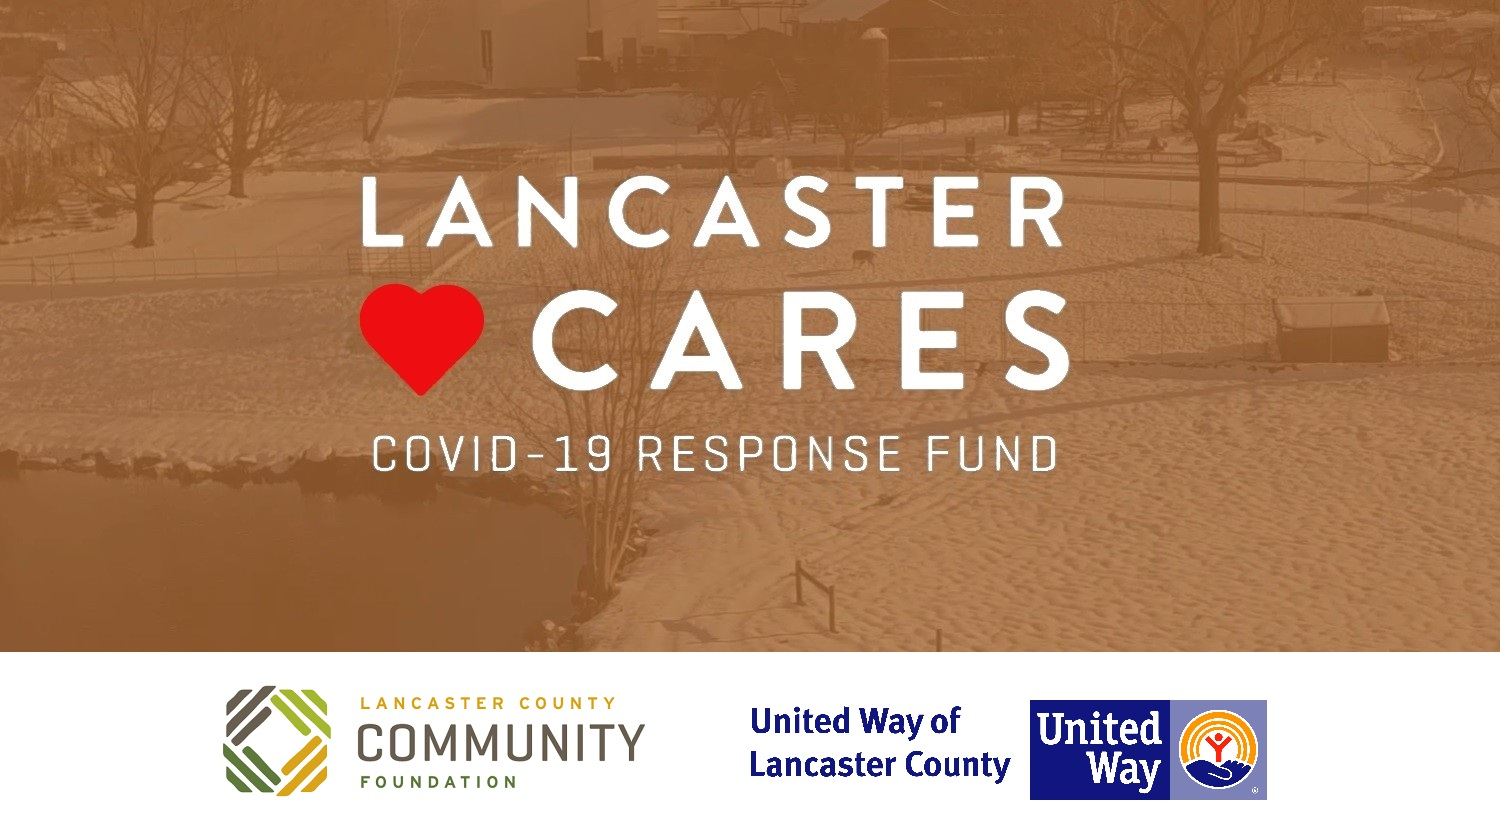 Lancaster CARES: How $1 million was raised to sustain county's needy during Covid-19